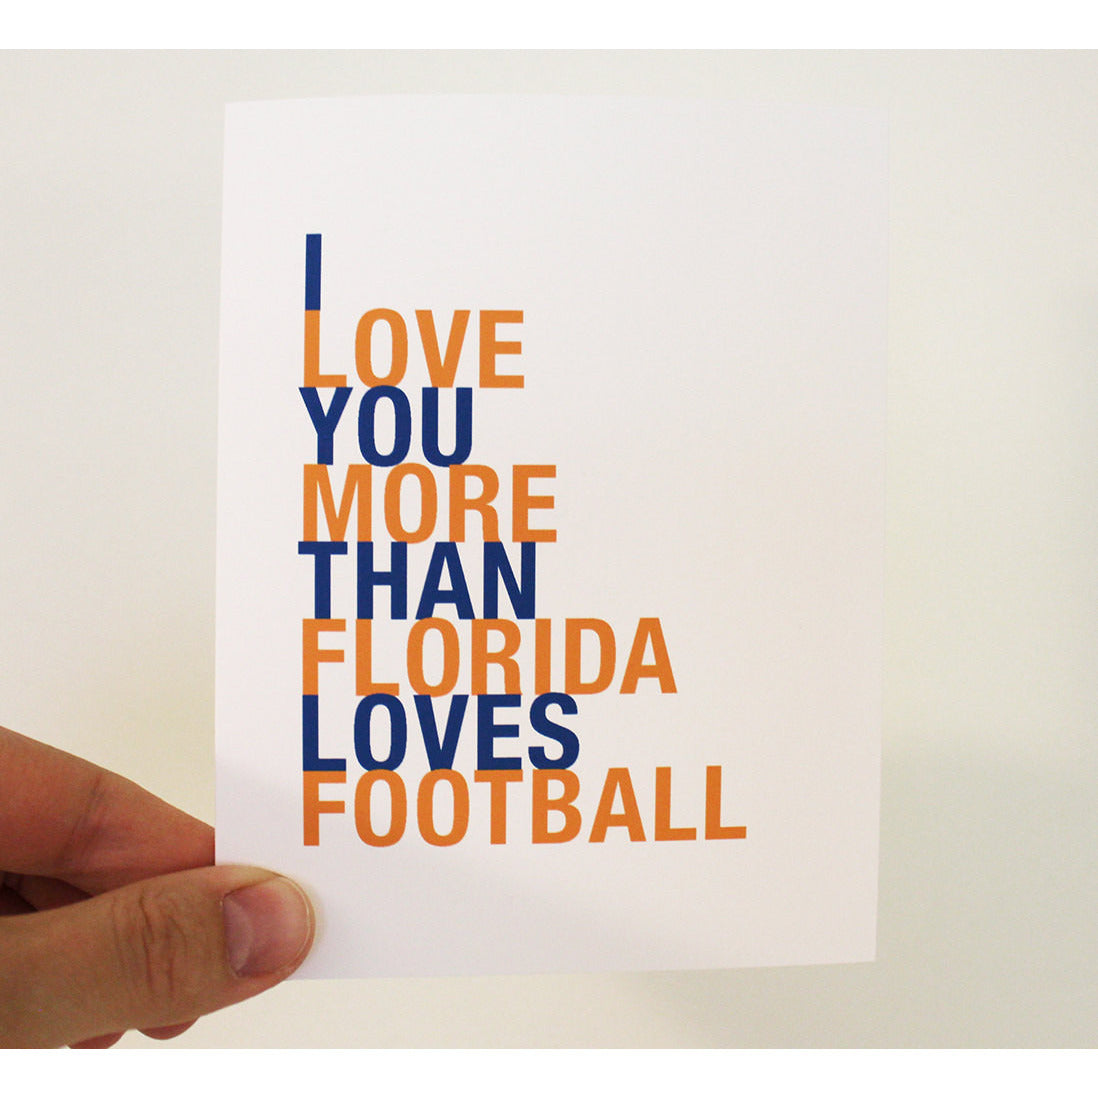 I Love You More Than Florida Loves Football greeting card  - Shop Online